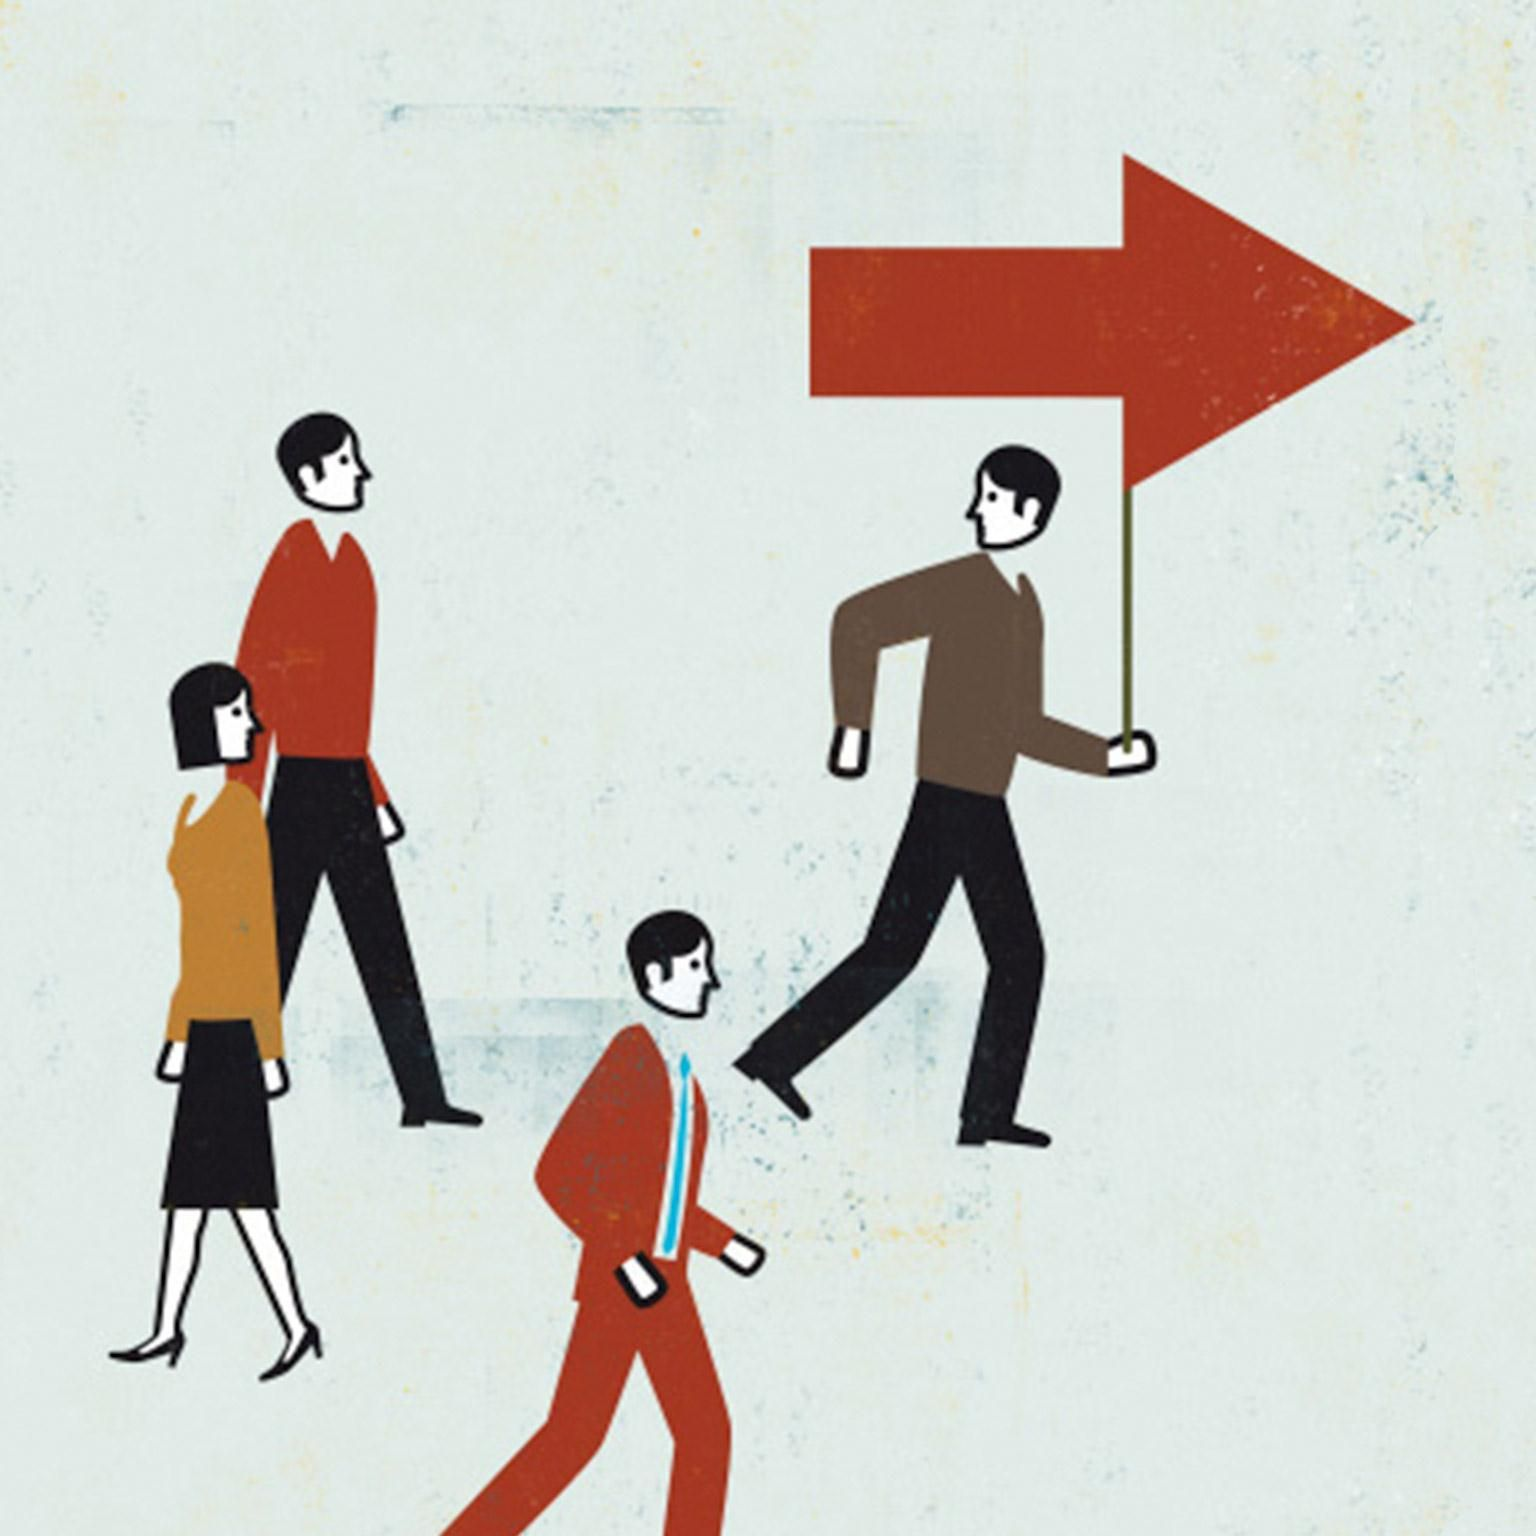 New research suggests that the secret to developing effective leaders is to encourage four types of behavior.